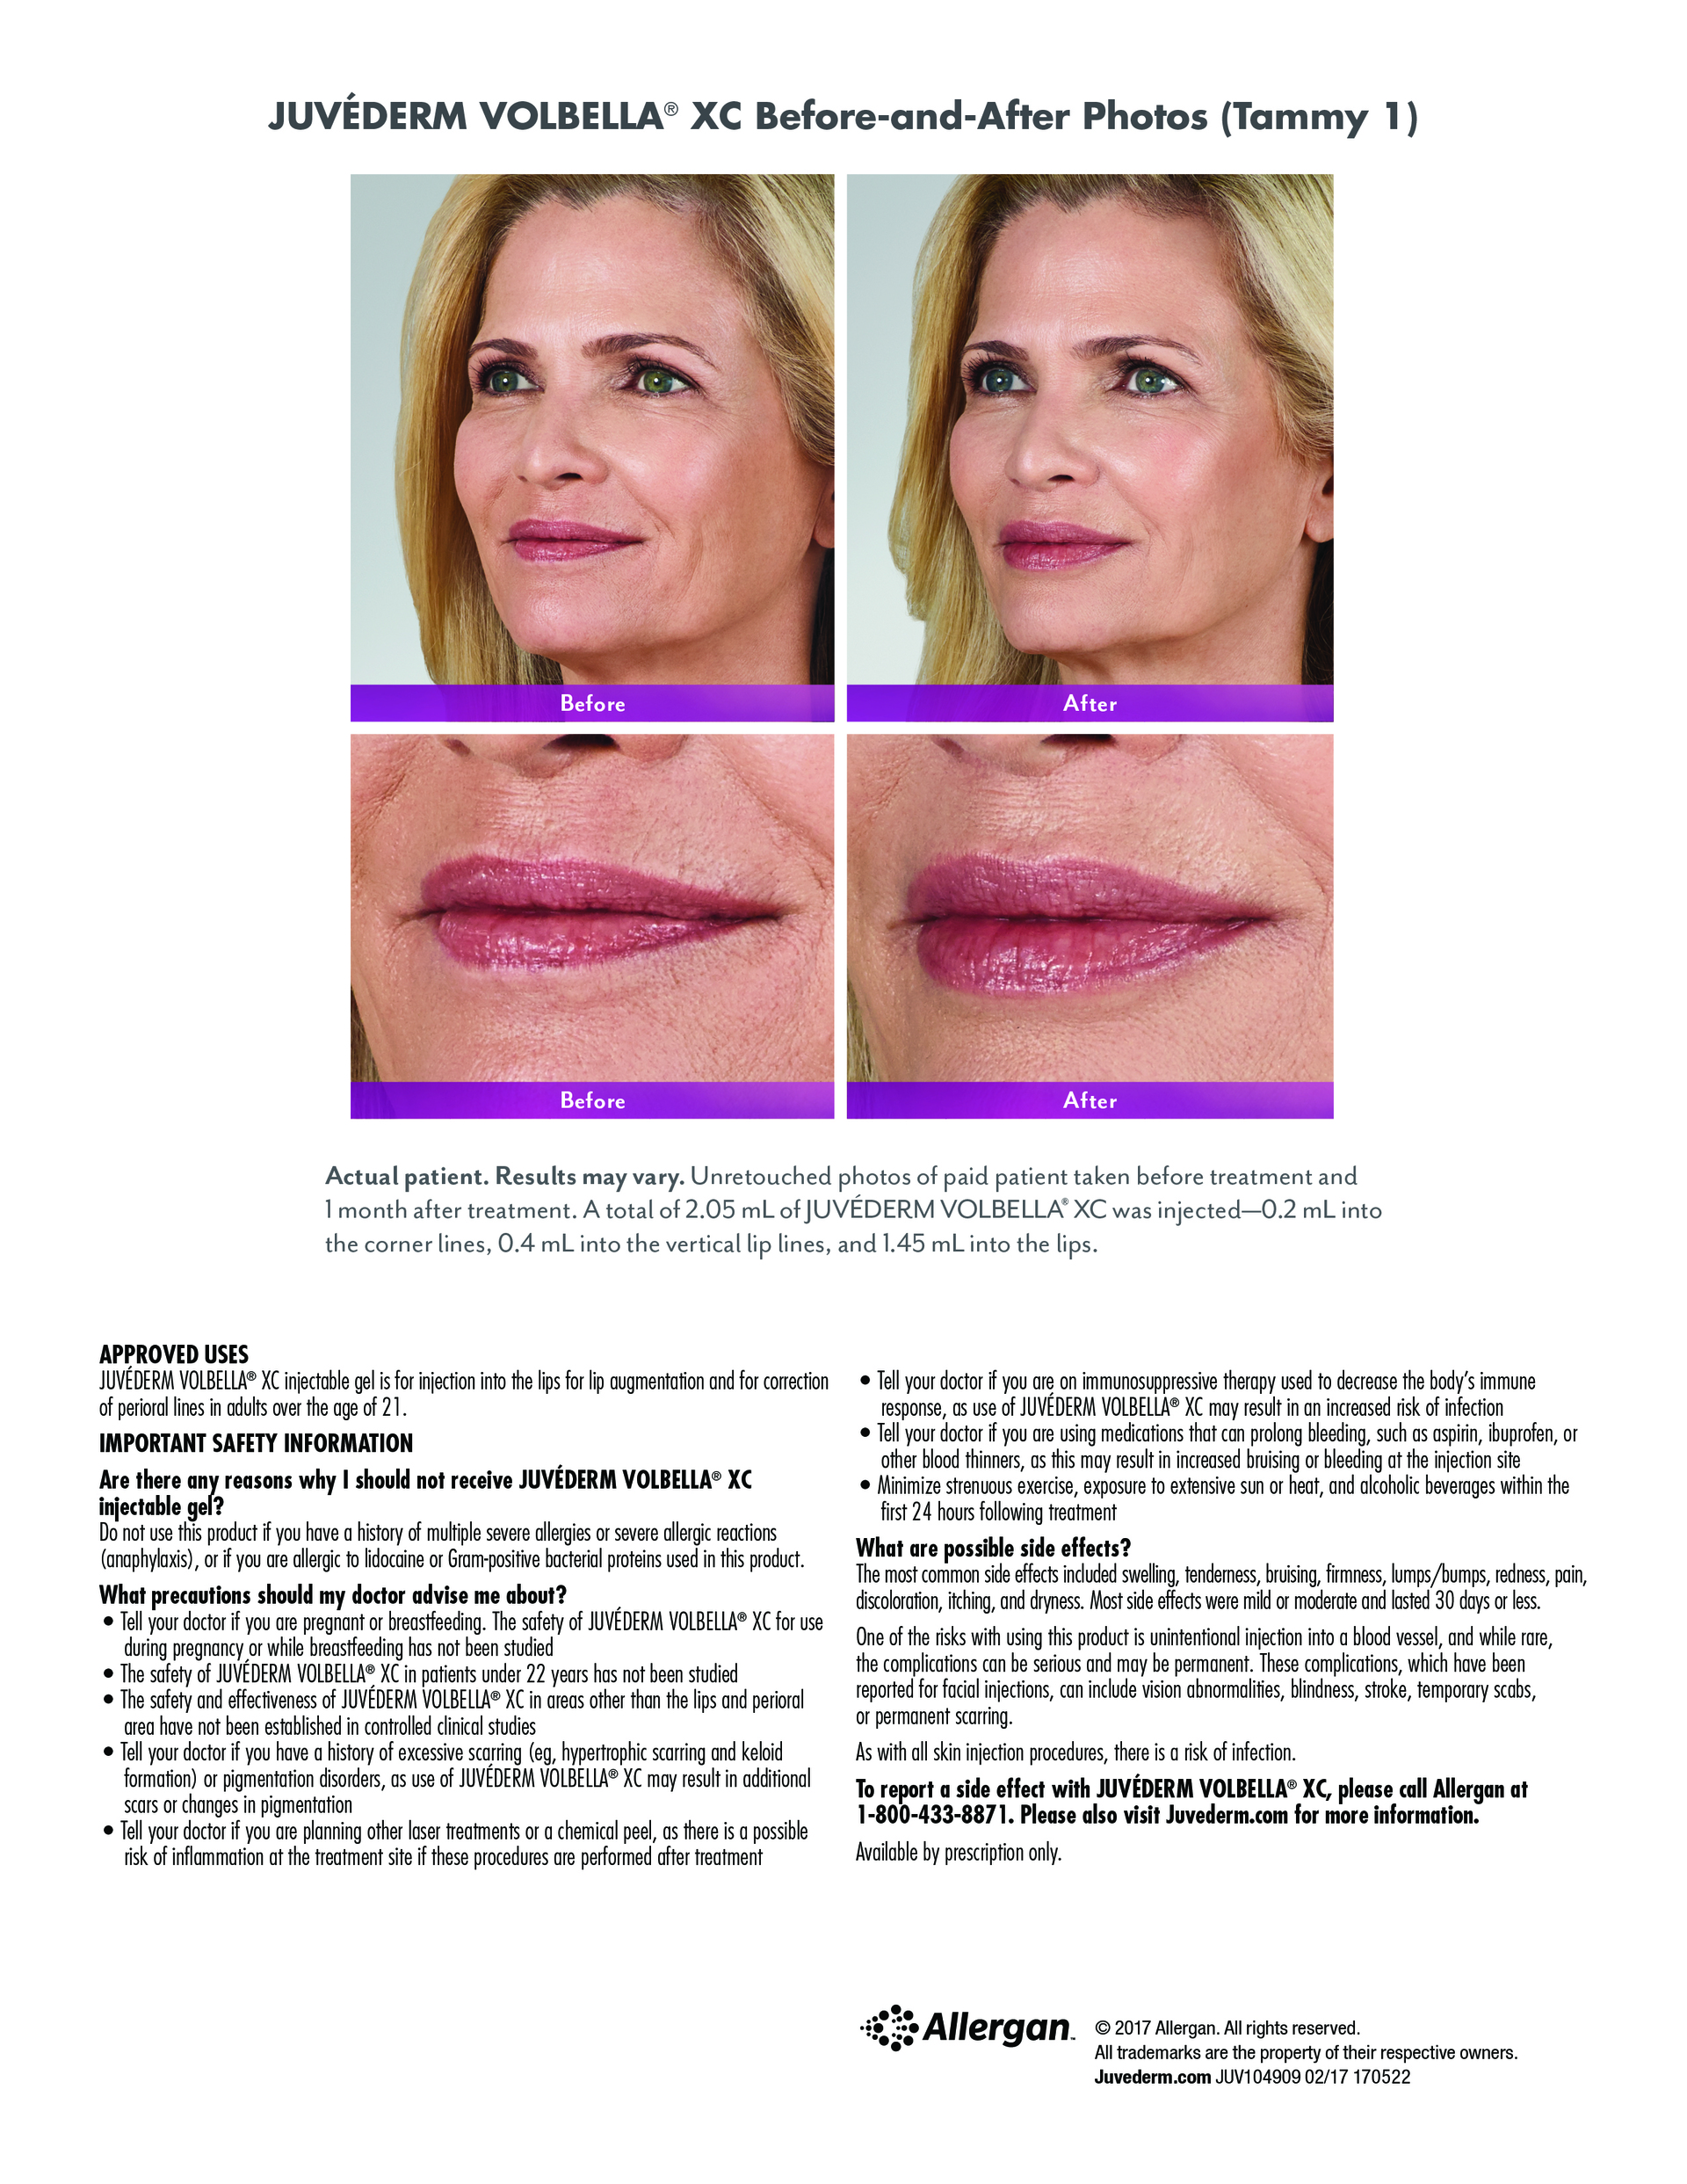 FDA Approved Lip Filler Juvederm Volbella XC Portland, Maine